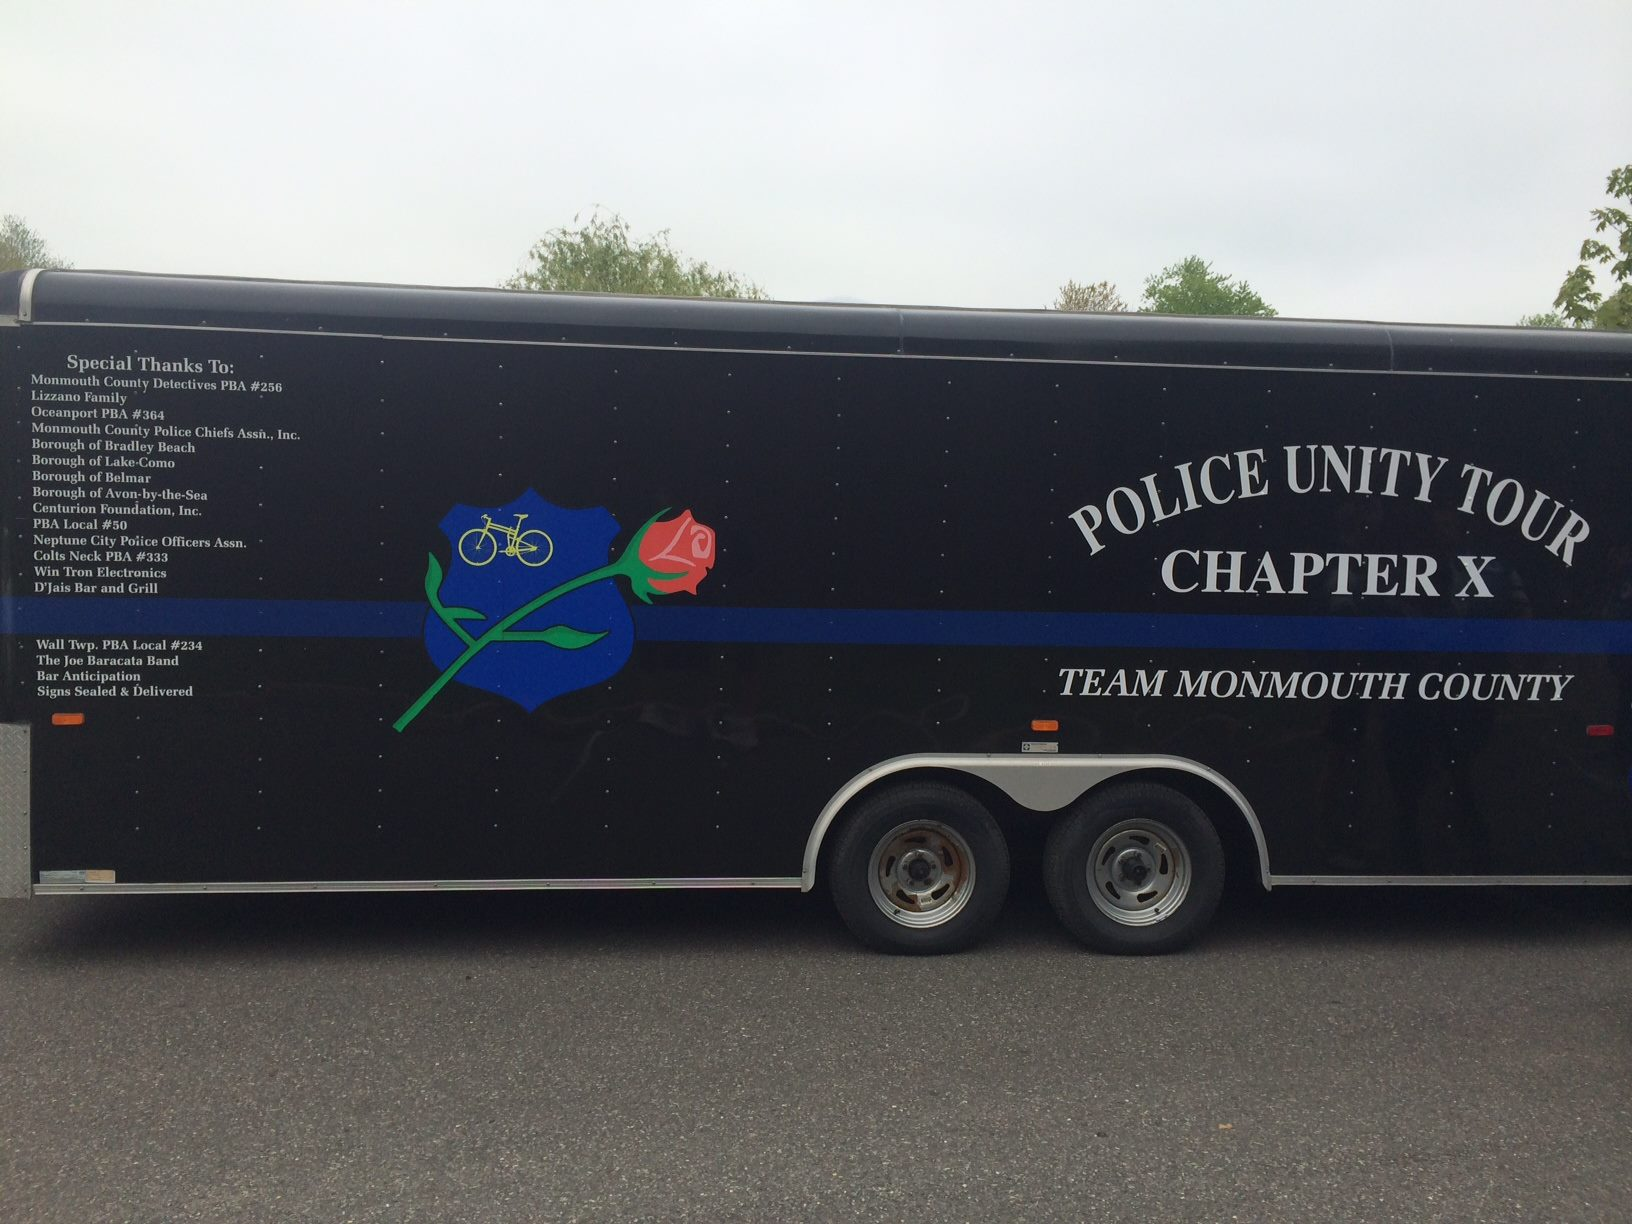 Police Unity Tour Chapter X